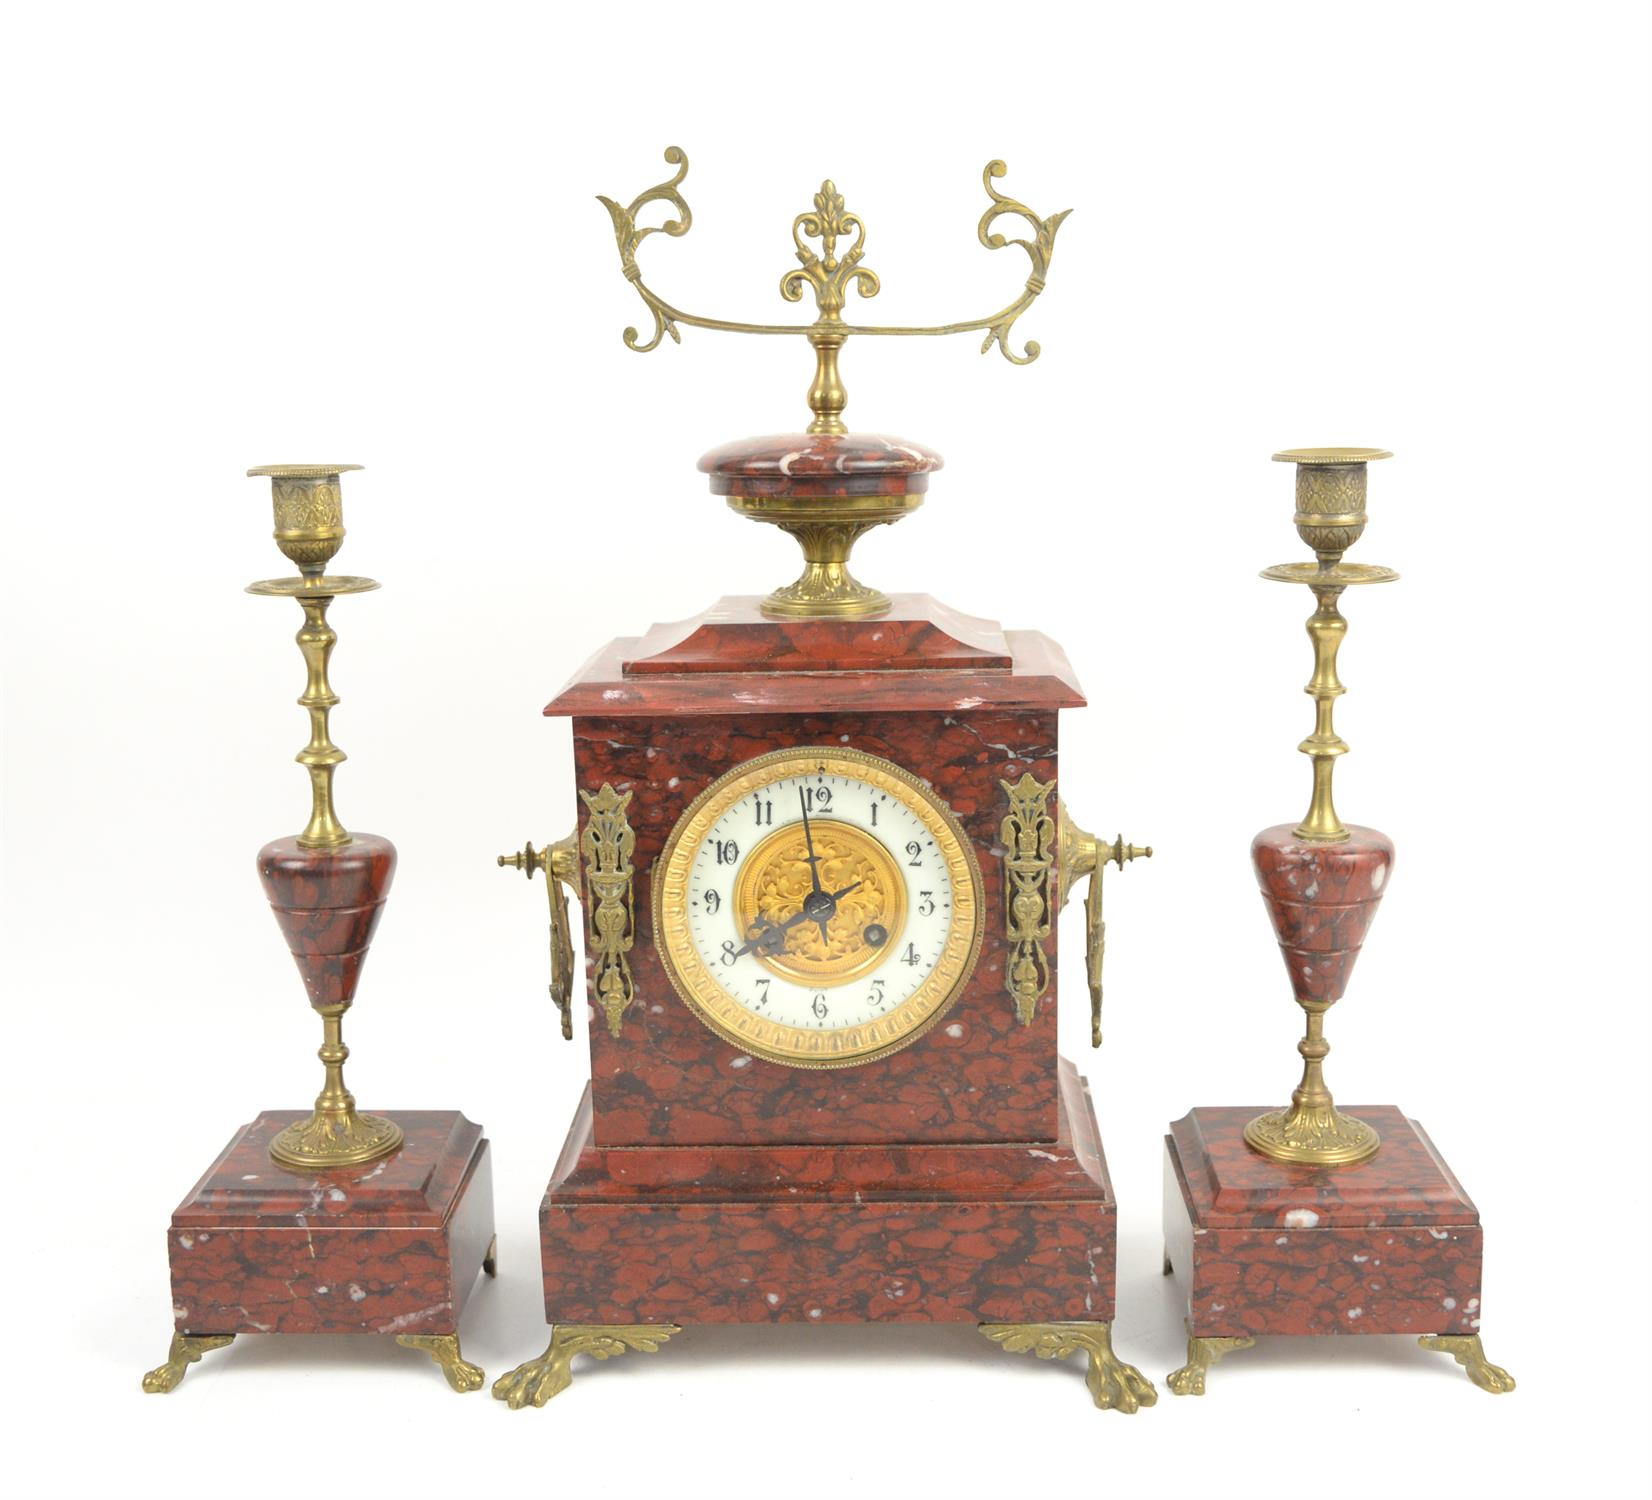 French rouge marble 8 day clock garniture by Japy Freres striking a bell on hour and half hour,